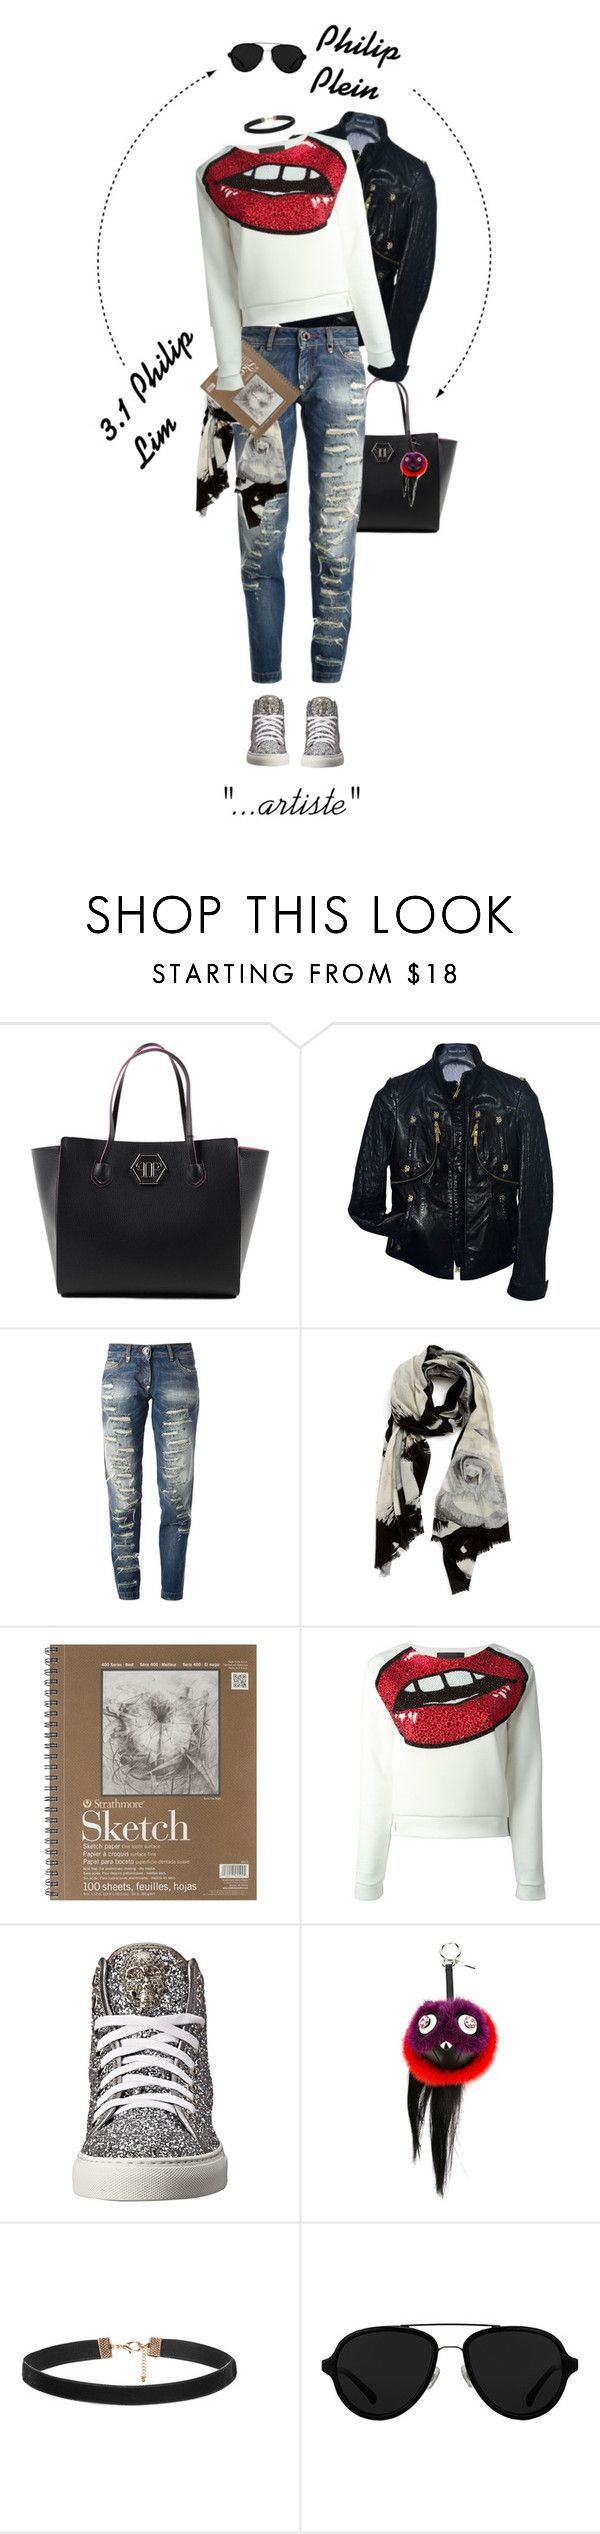 """""""Philippe Philip"""" by andrea-garzon ❤ liked on Polyvore featuring Philipp Plein, Nordstrom, Fendi and 3.1 Phillip Lim"""